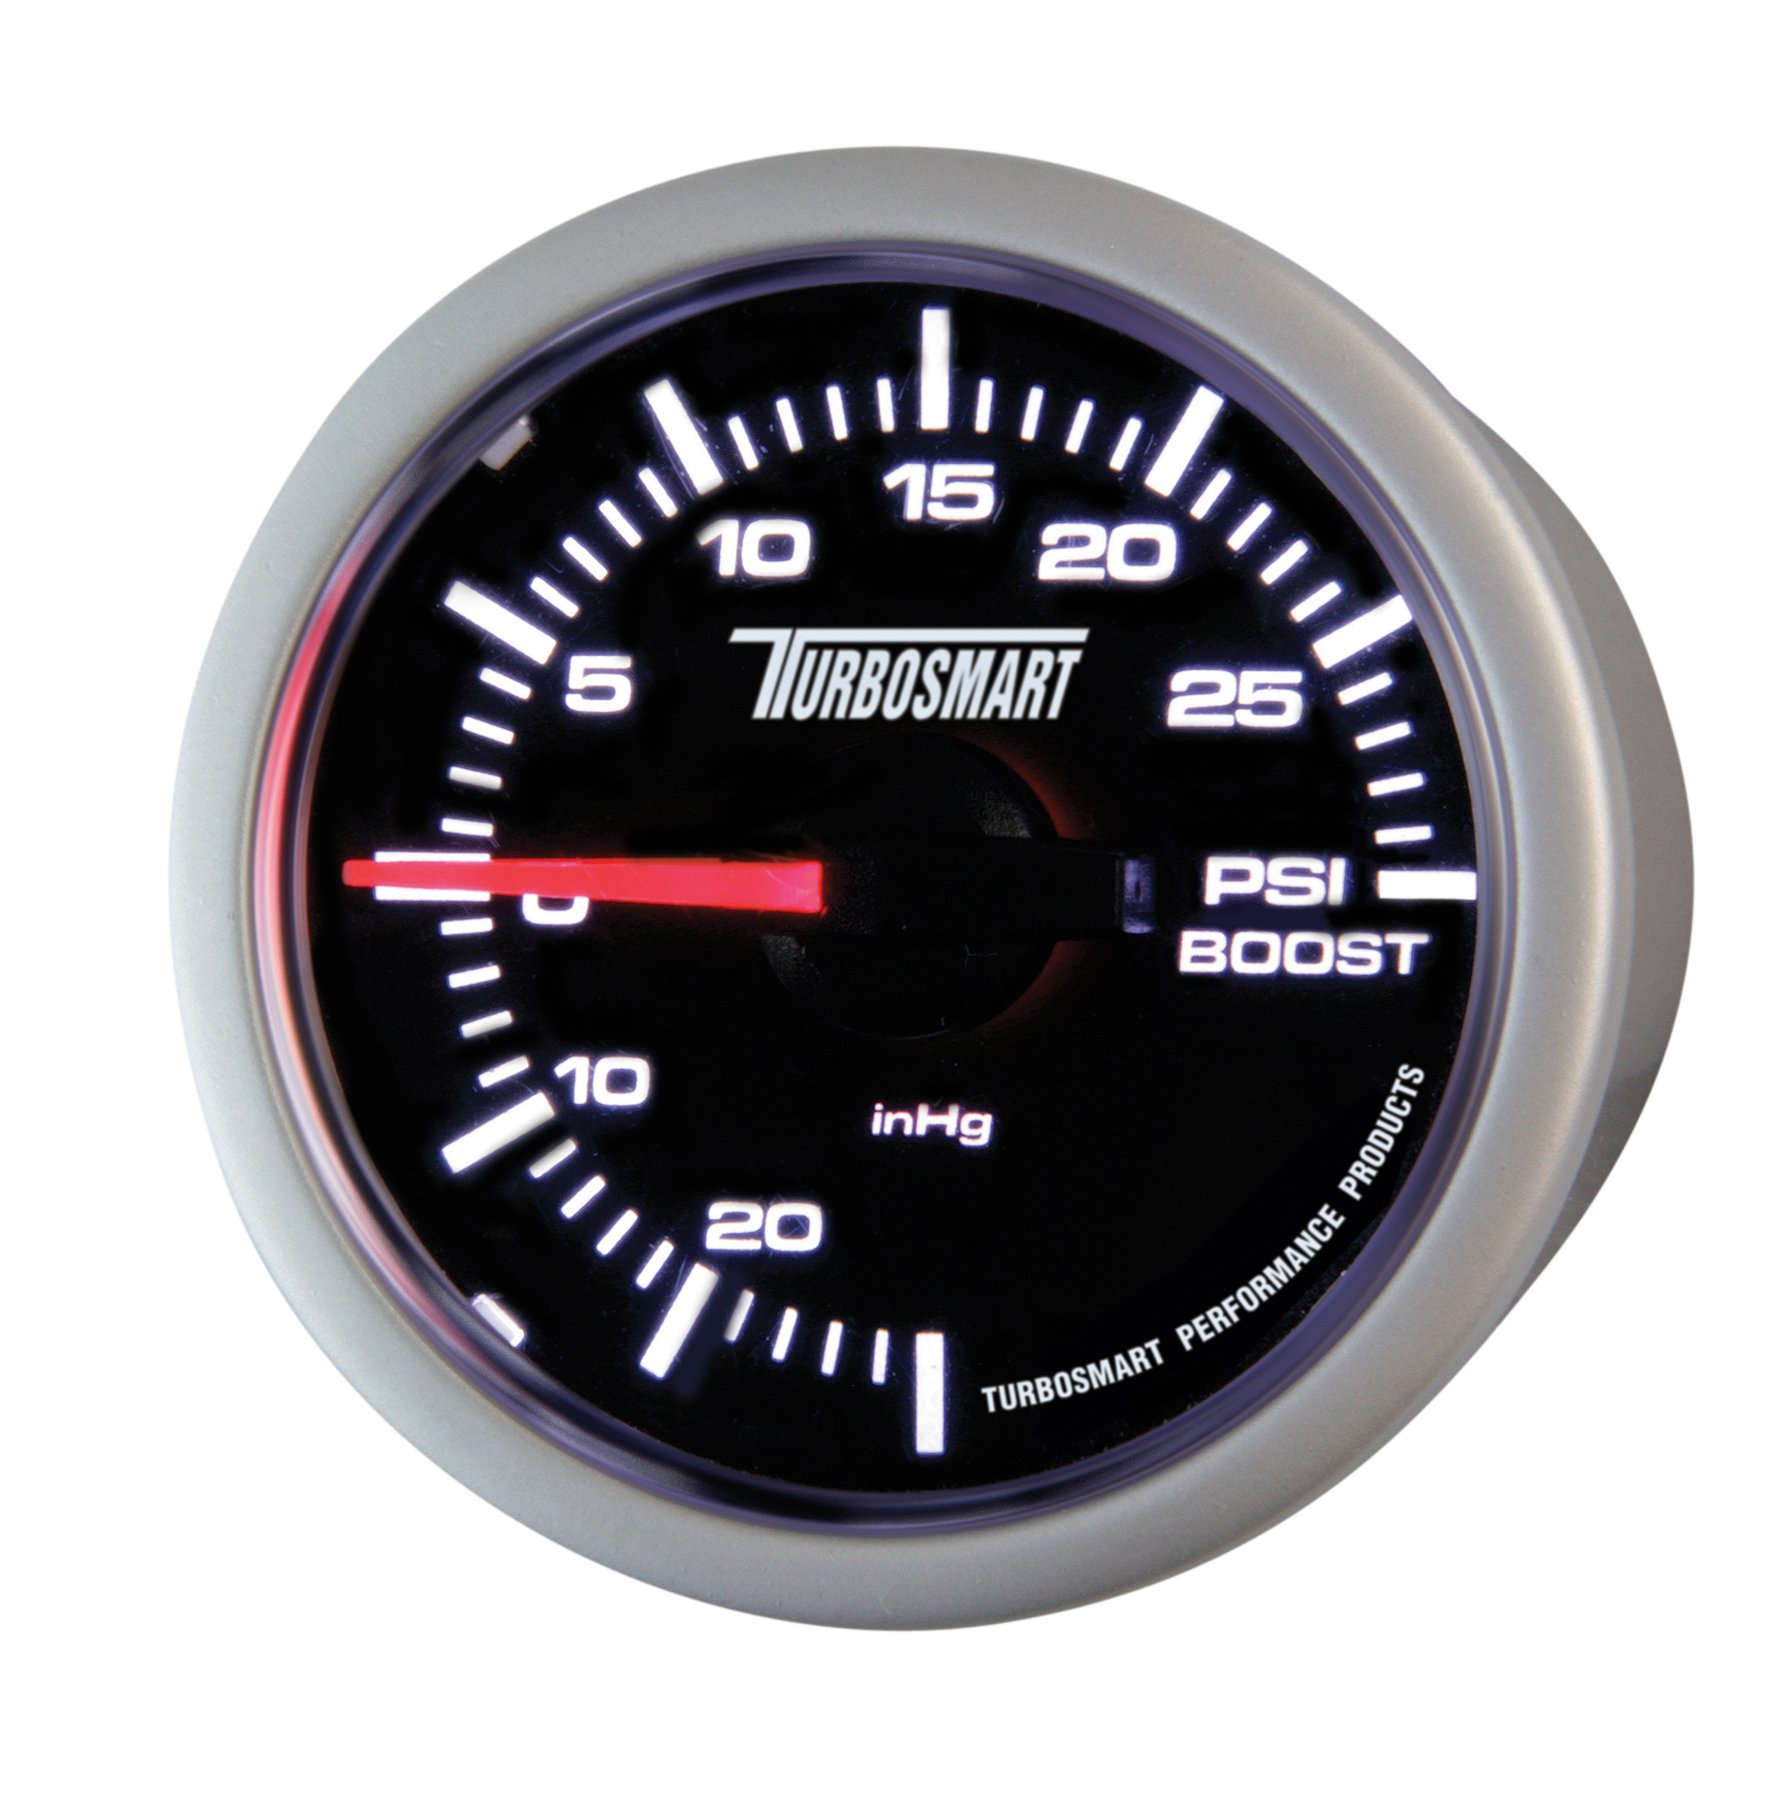 Turbosmart TS-0101-2023 52 mm - 2-1/16'' 0-30 PSI Boost Gauge for Gated Boost Control Valves